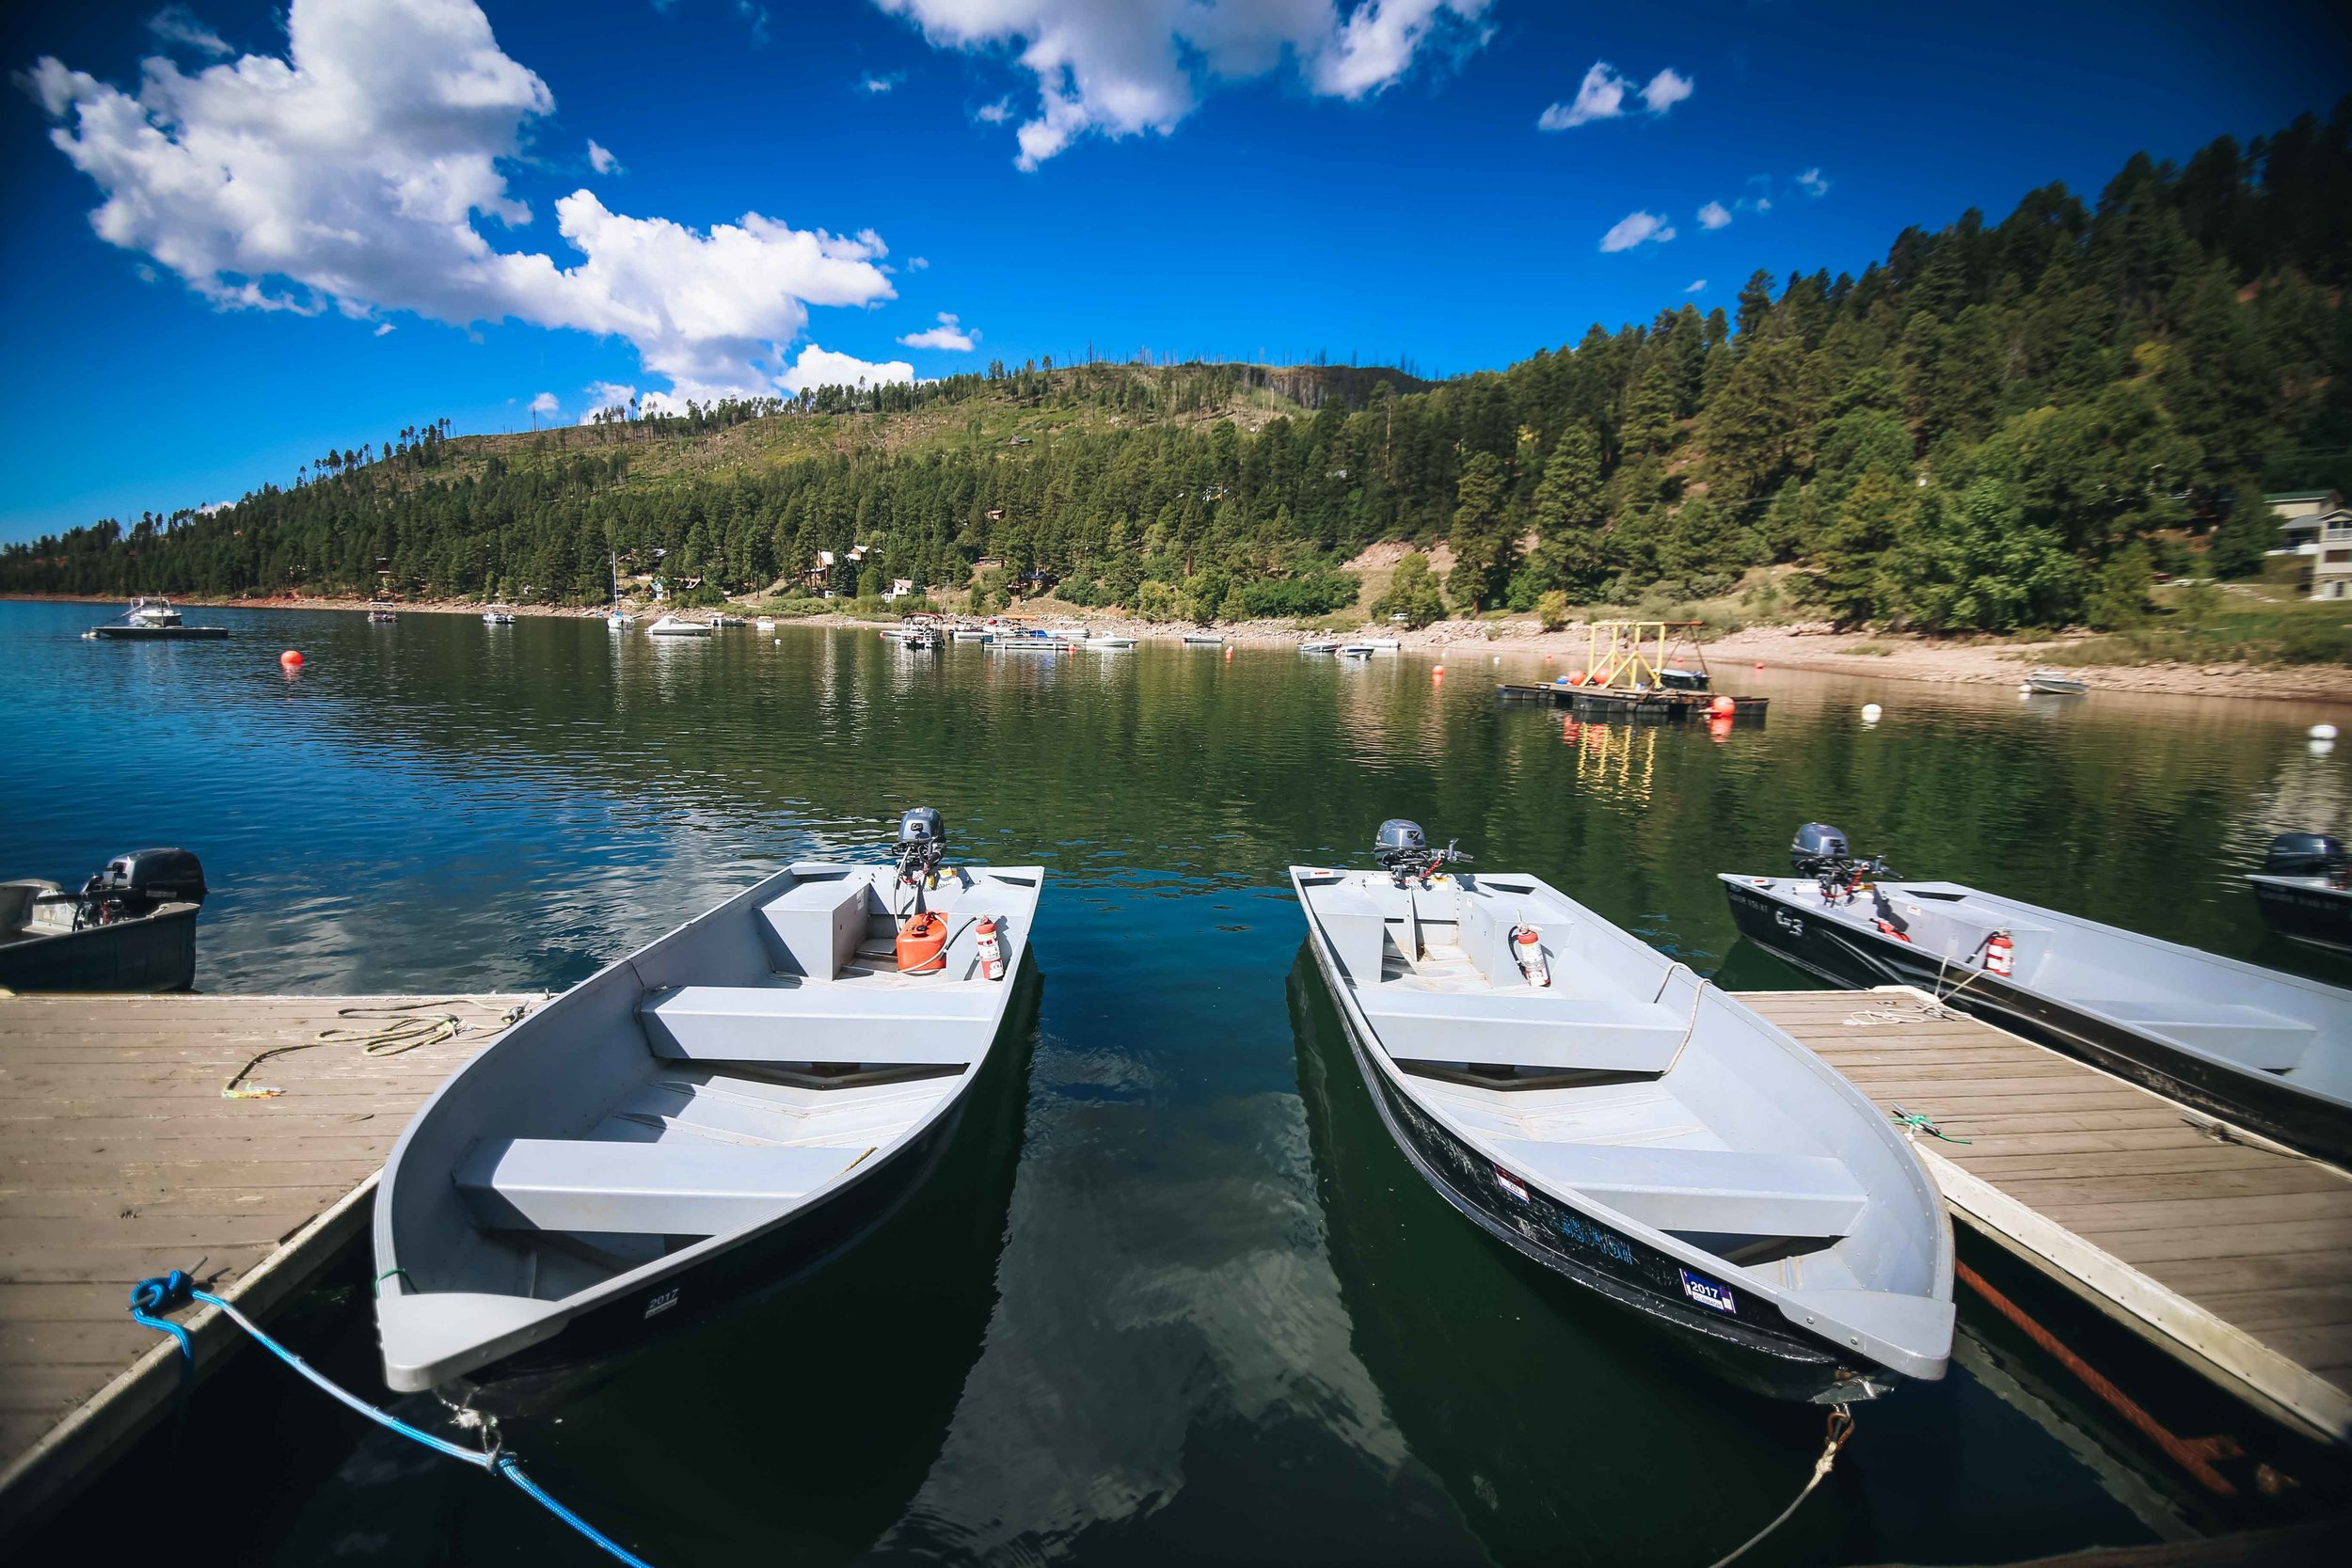 09-13 Vallecito Marina, Boats, Dock, Lake, Fishing, Bear-6485.jpg